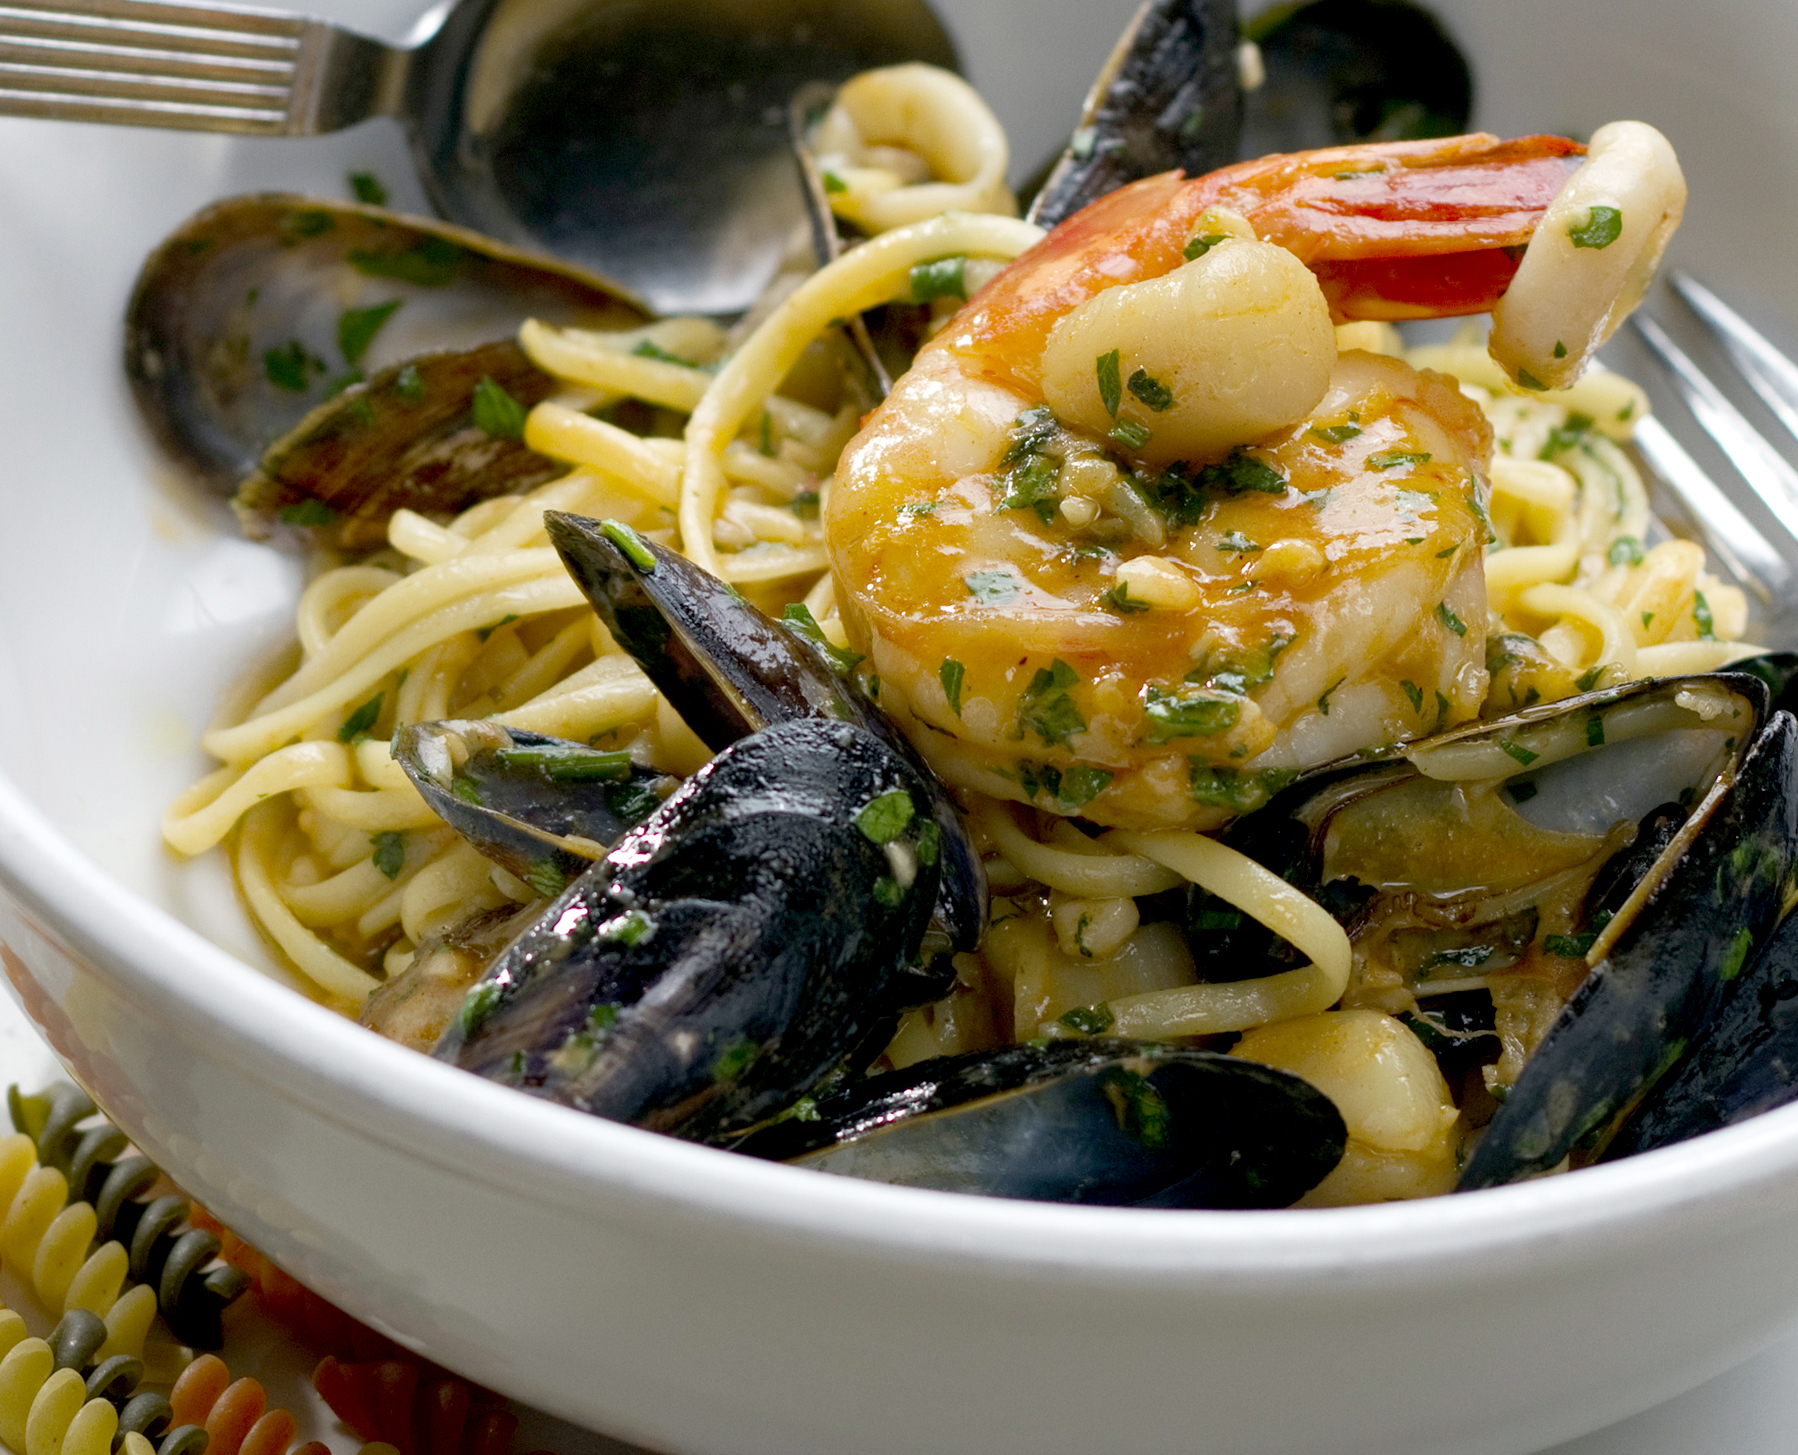 Linguine with seafood symphony